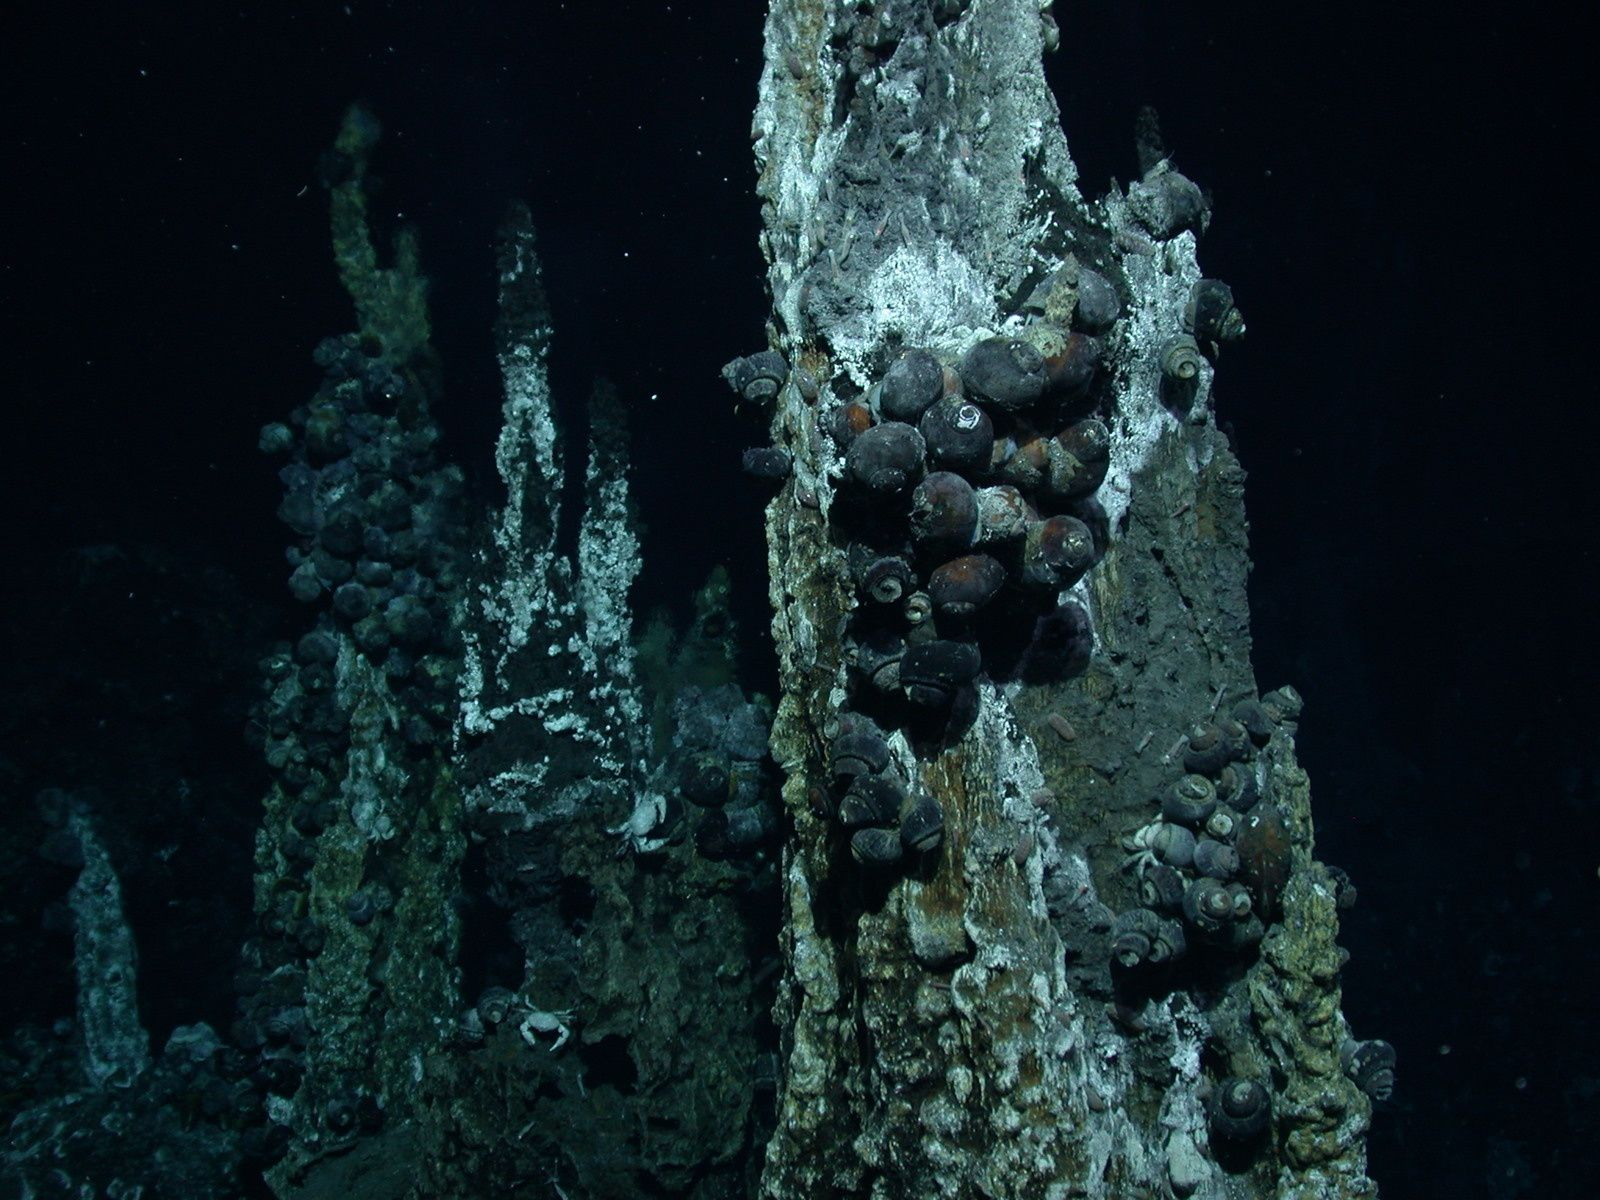 Molluscs and crabs living on hydrothermal vents - photo ns.umich.edu